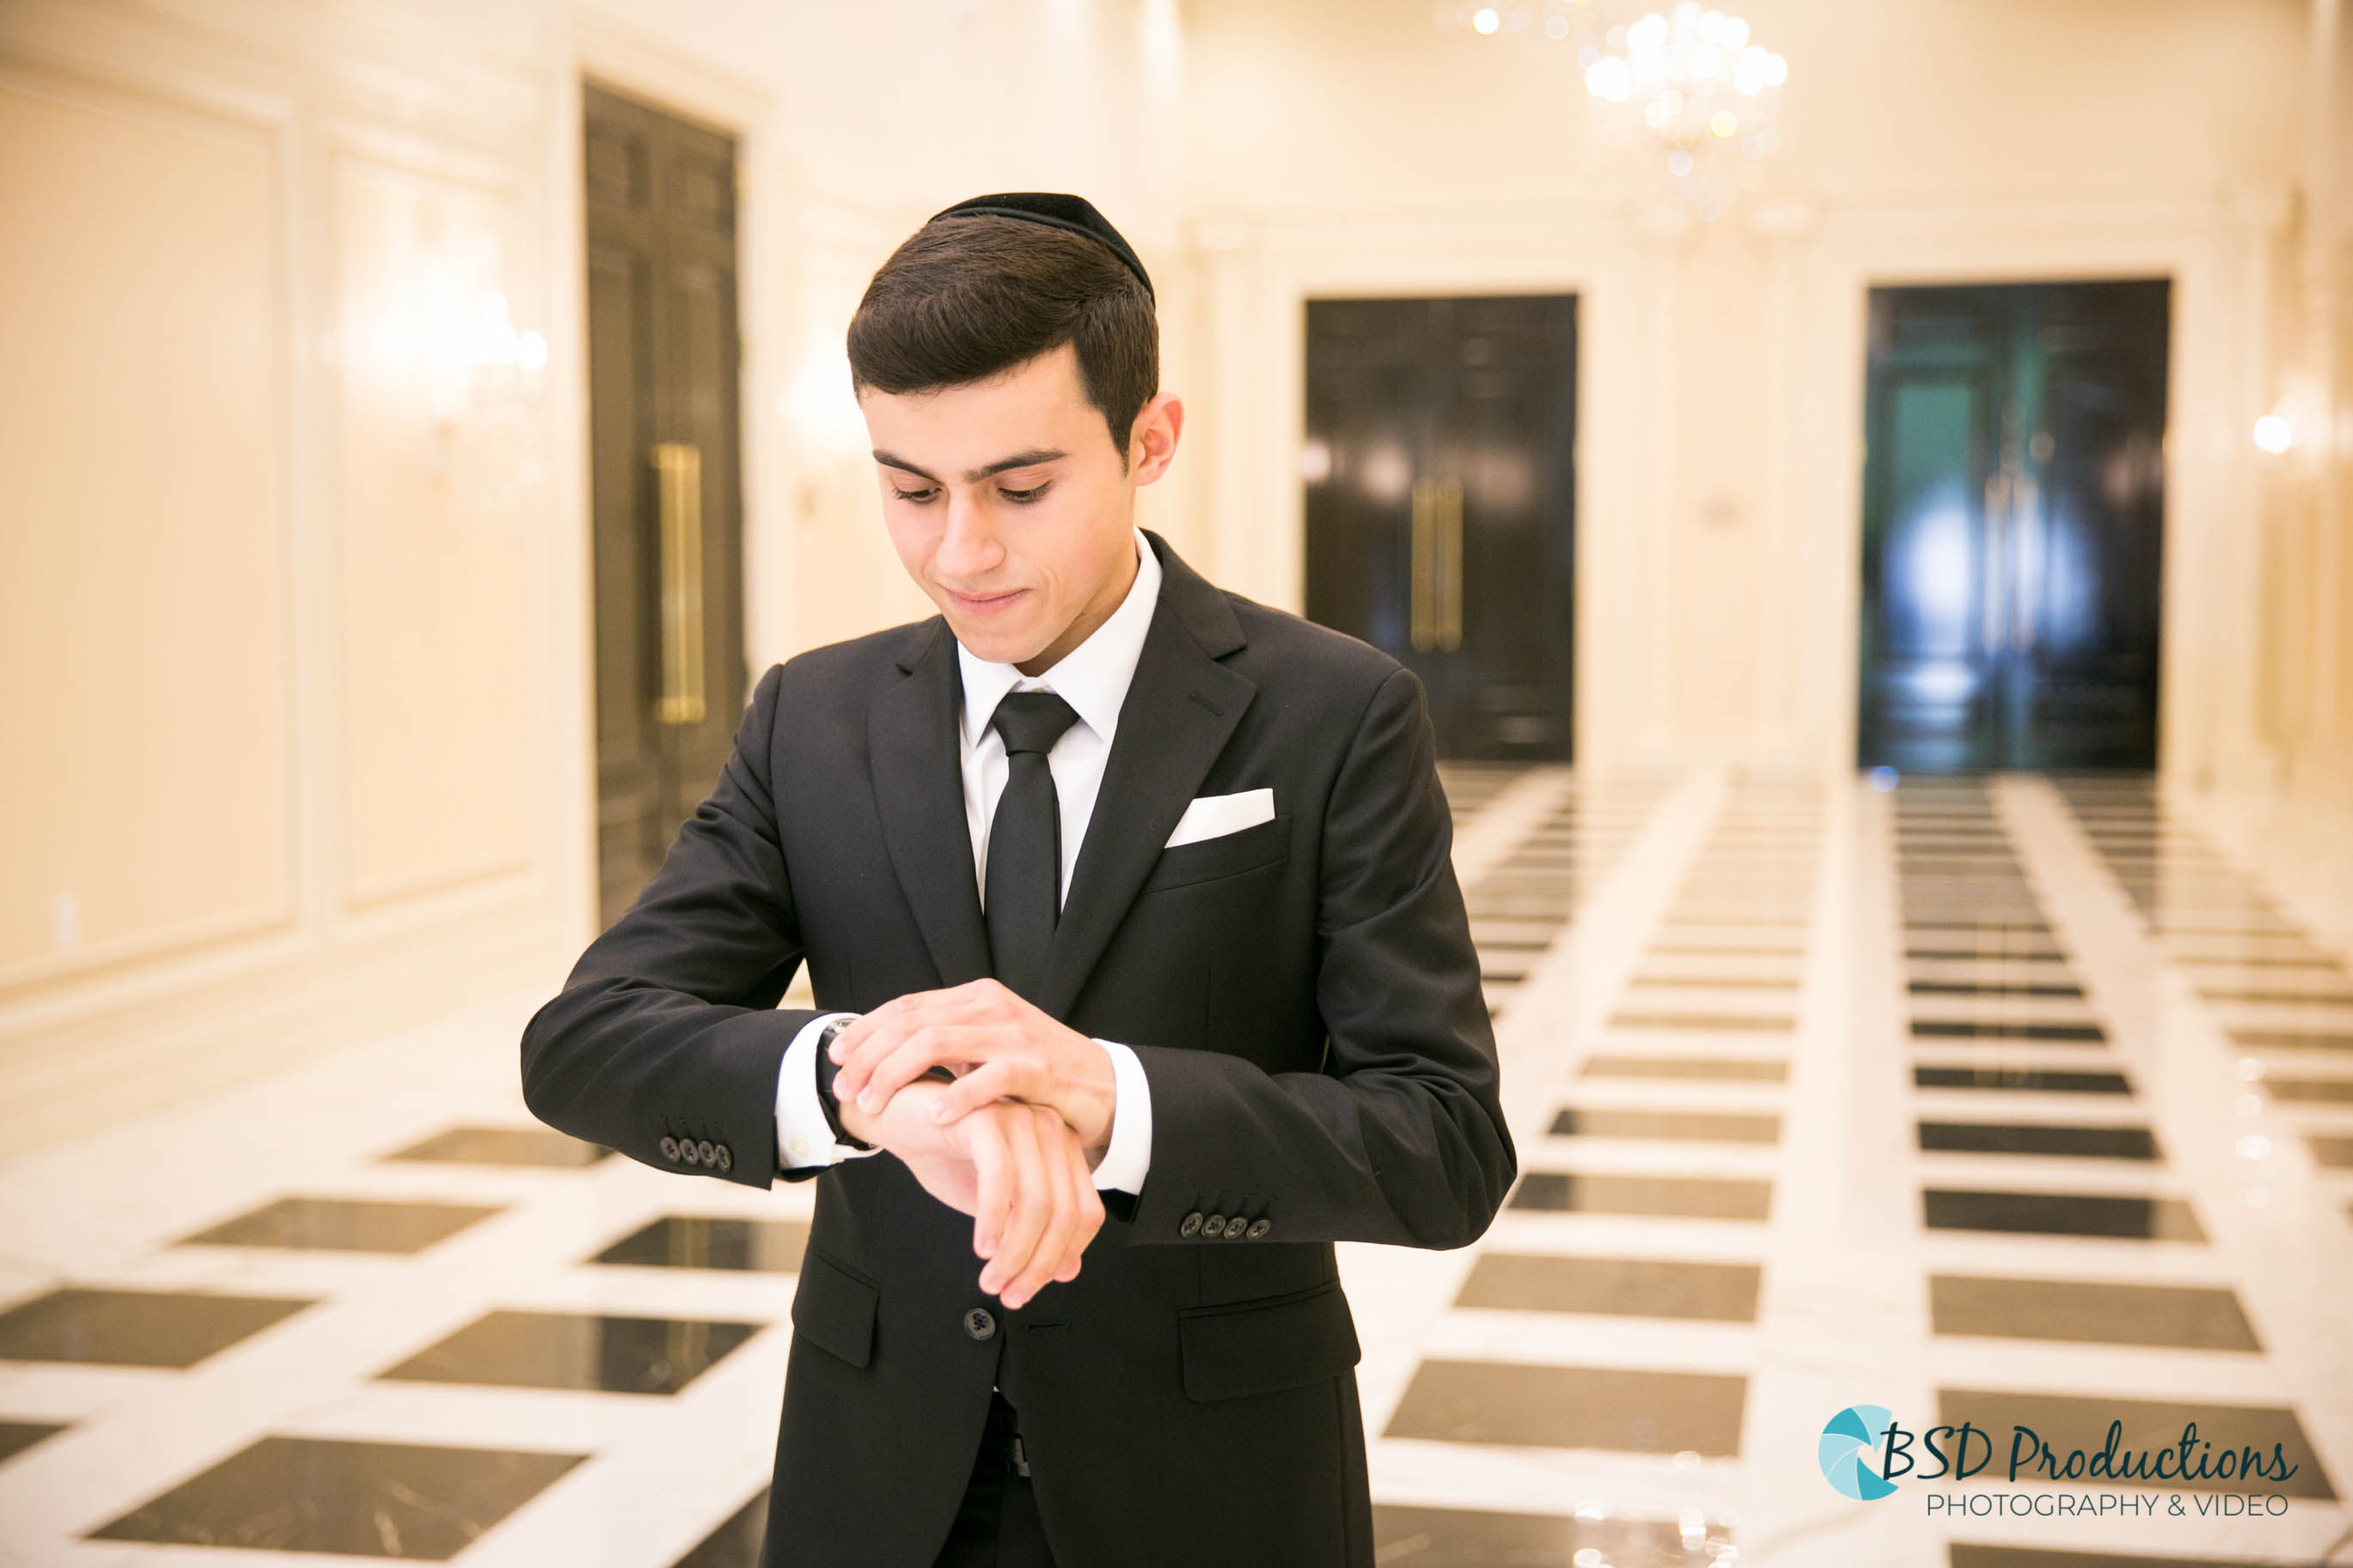 UH5A4544 Wedding – BSD Productions Photography